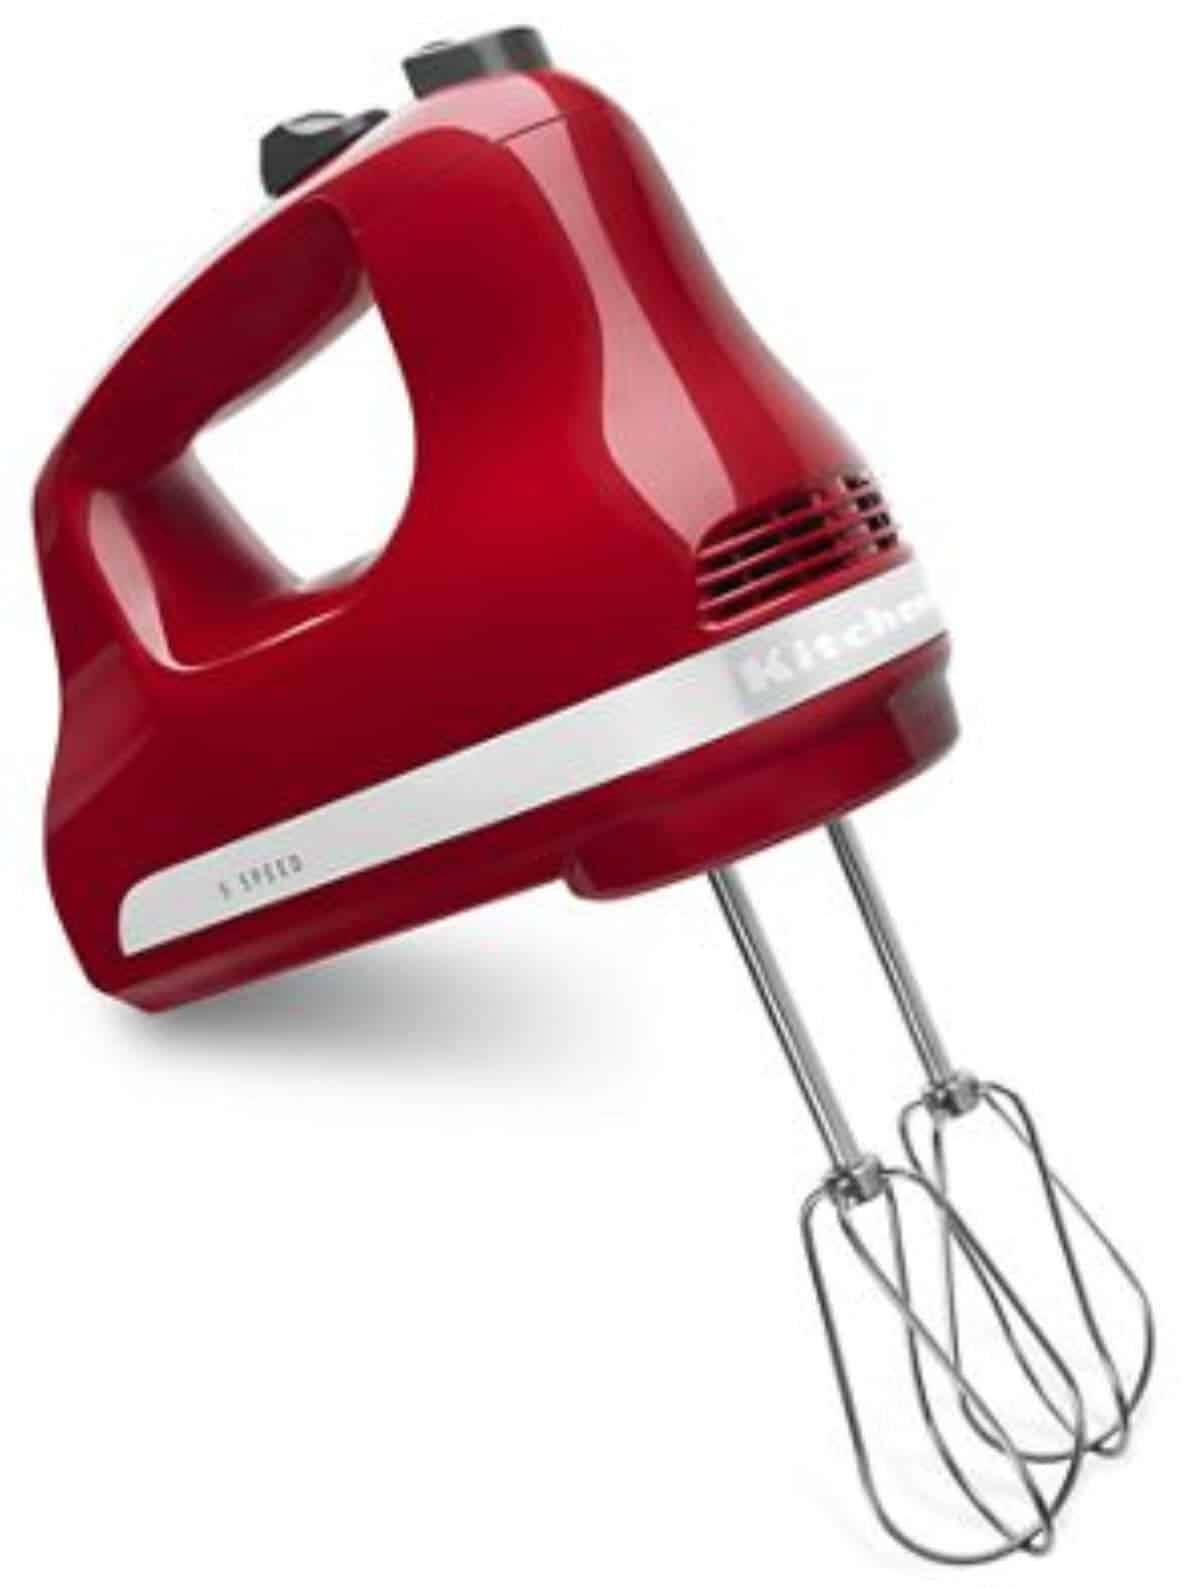 picture of red kitchenaid hand mixer 512